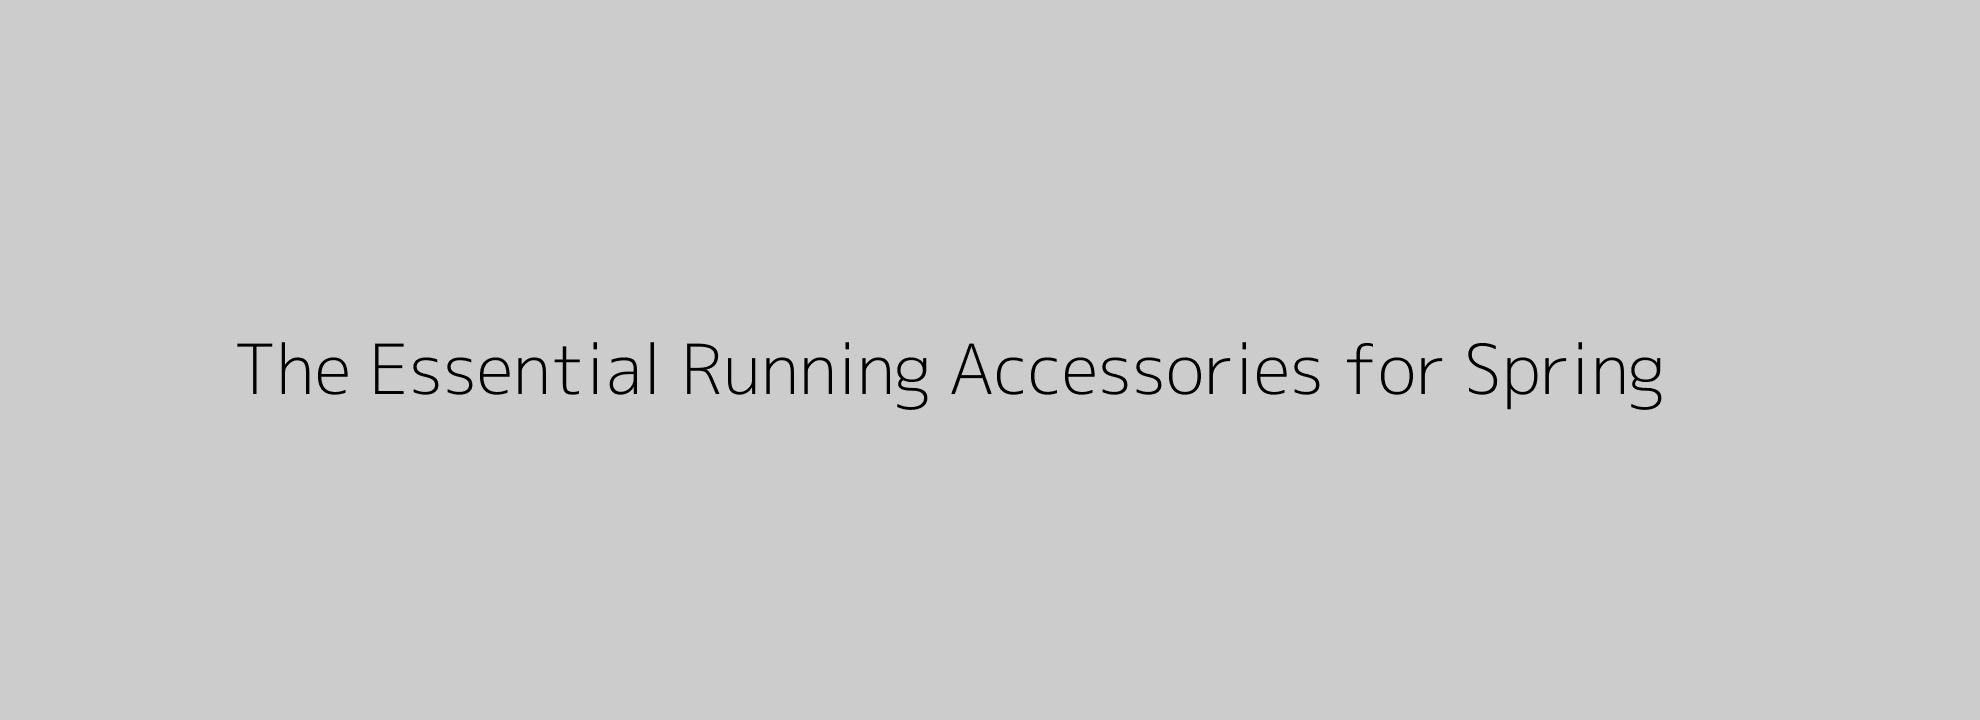 The Essential Running Accessories for Spring